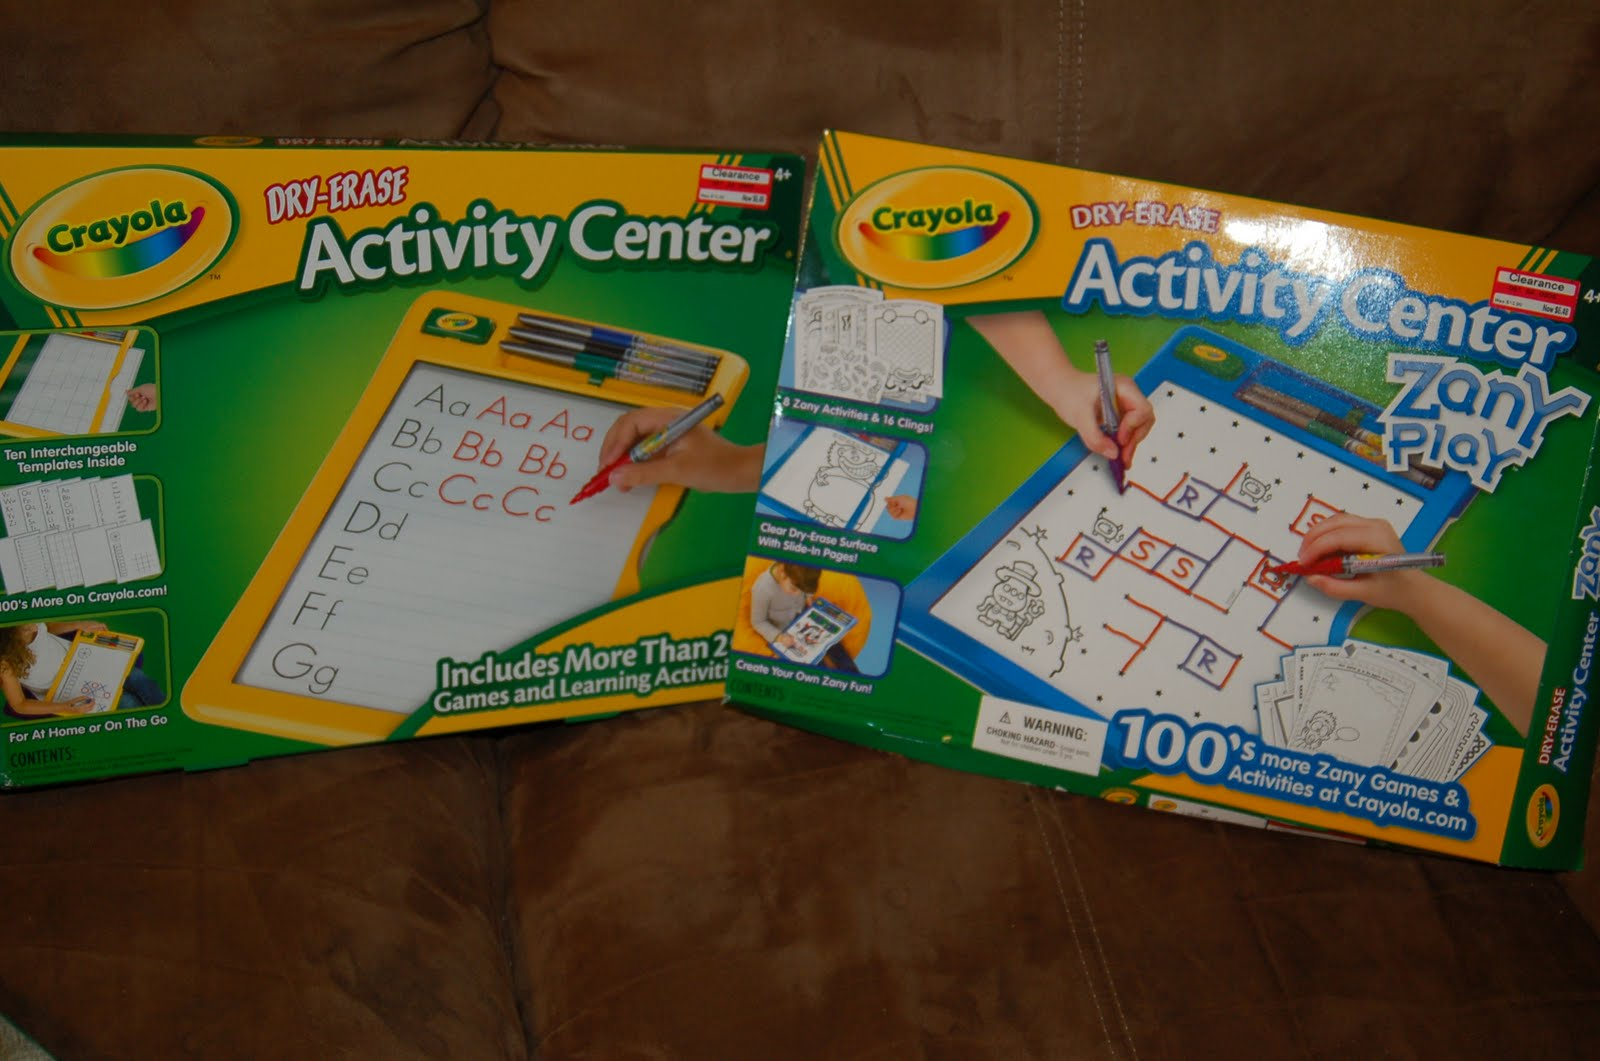 Crayola Dry Erase Activity Center Product Review